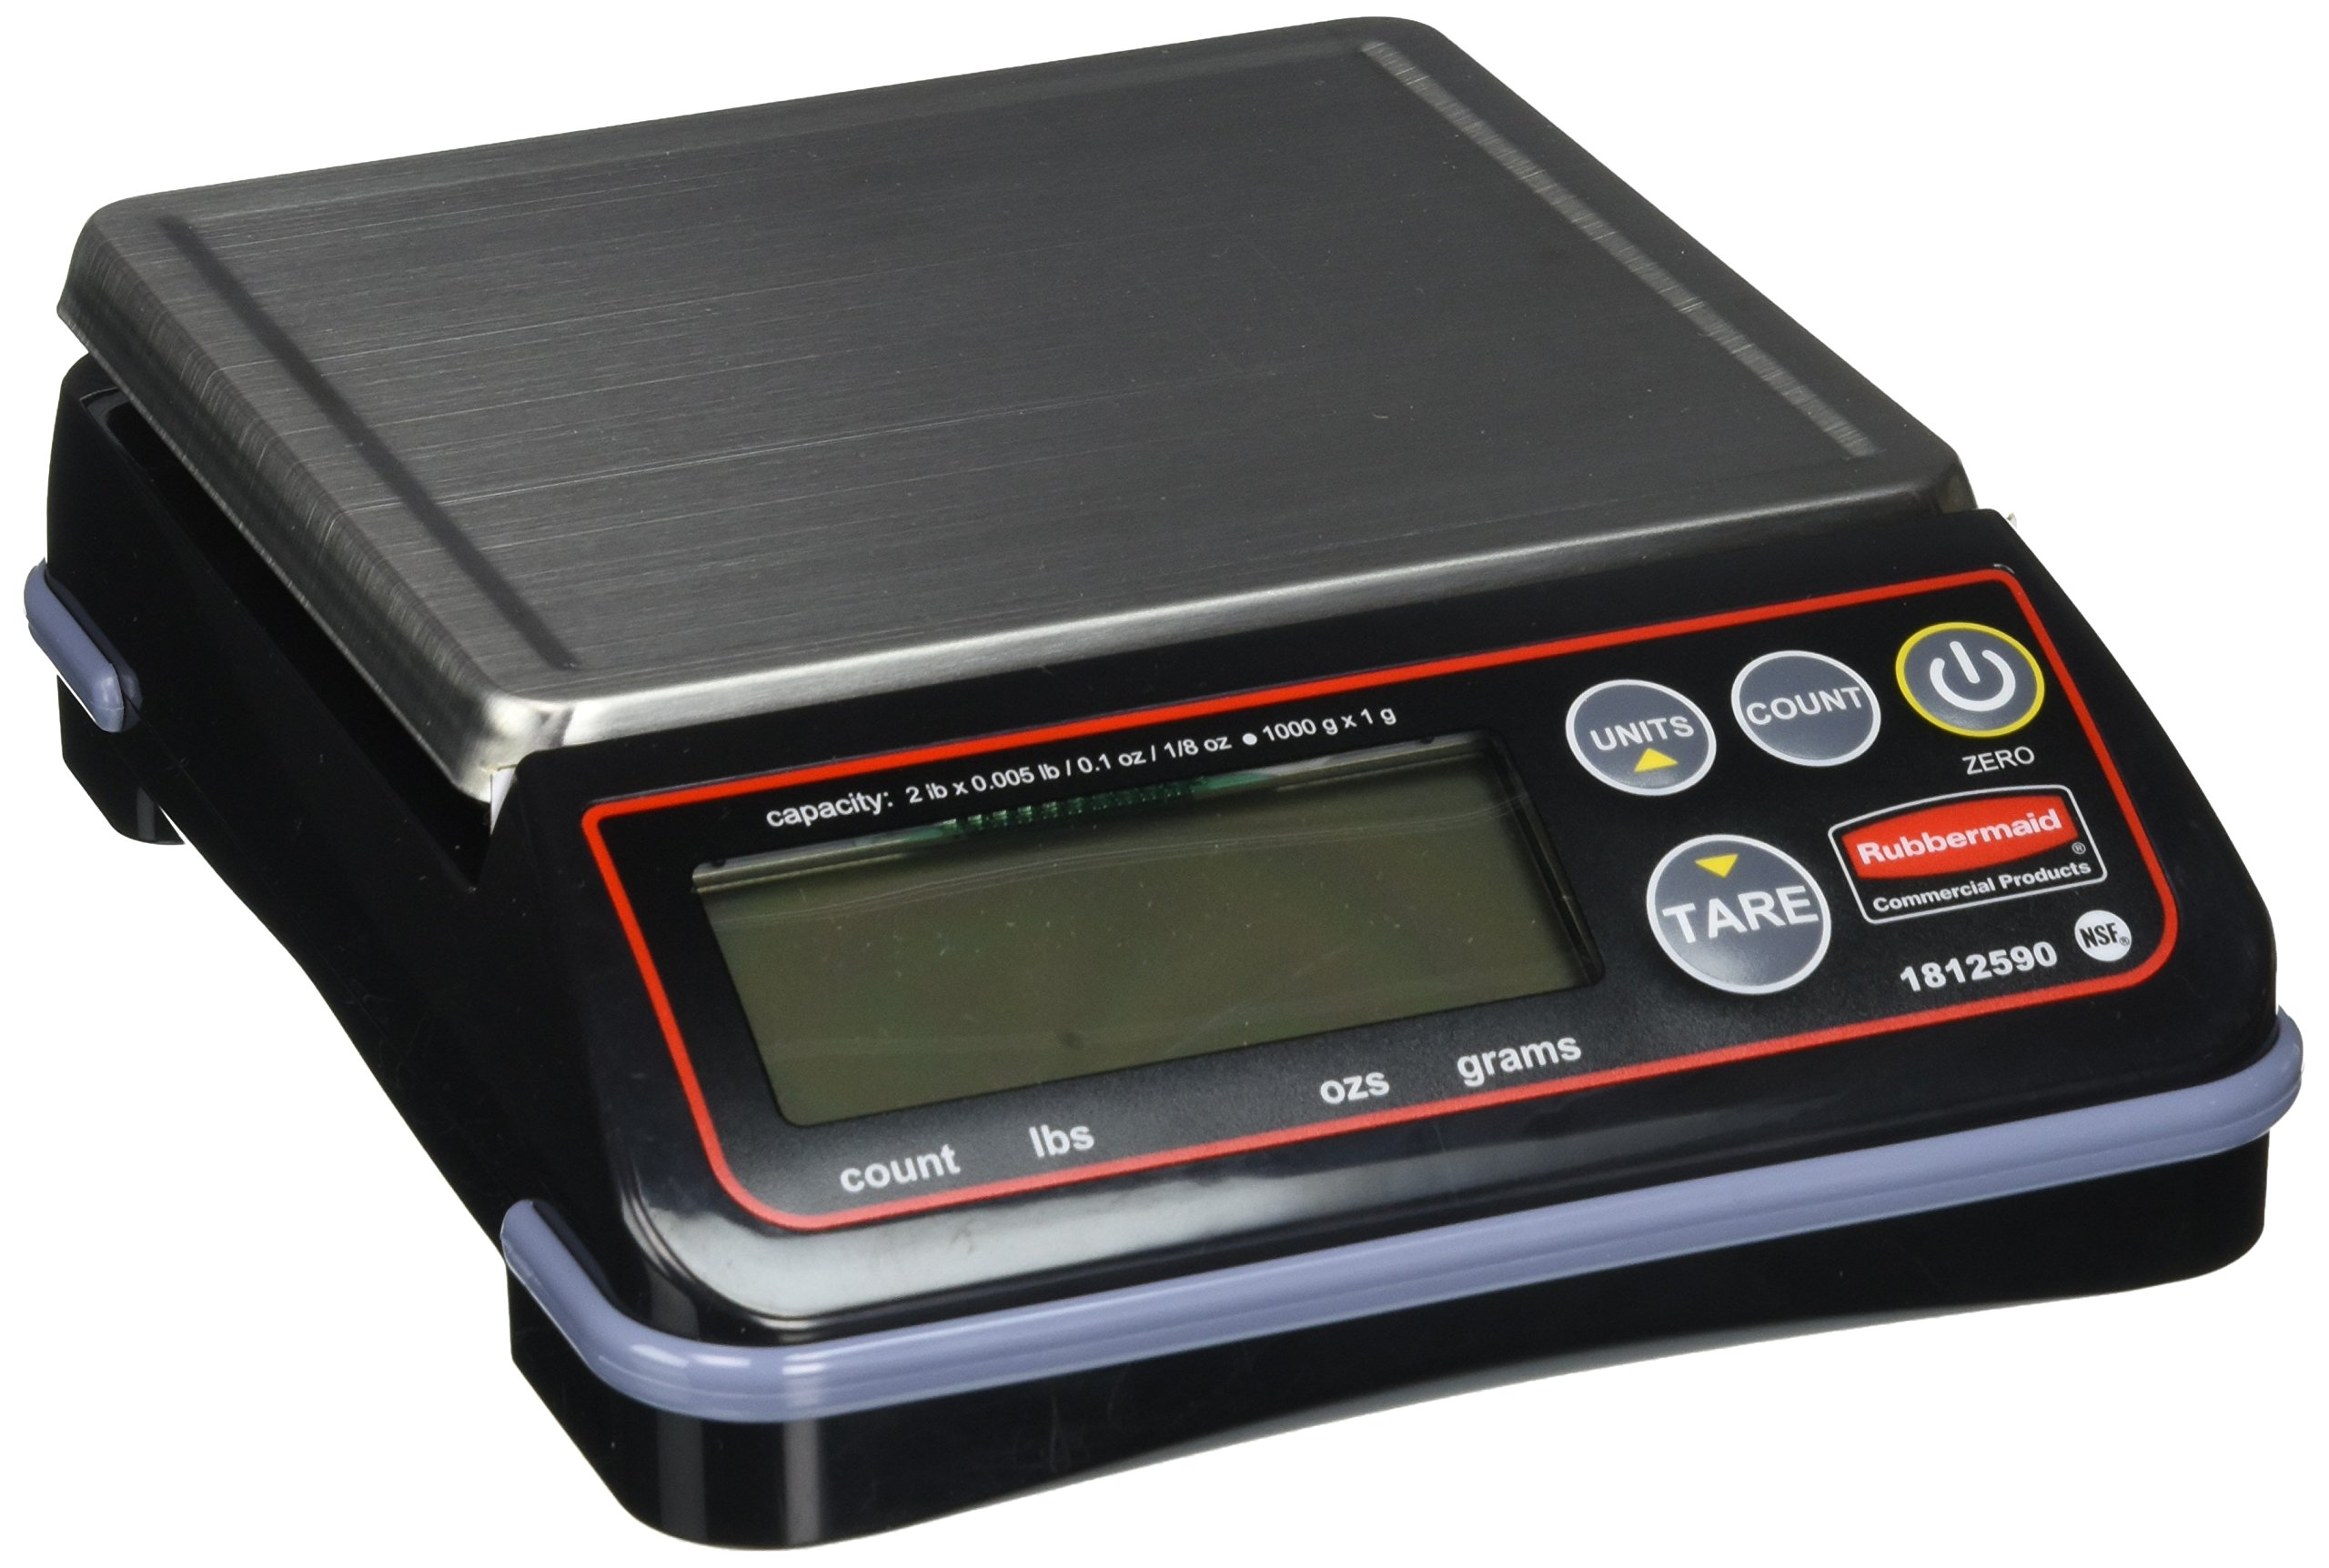 Rubbermaid Commercial Products 1812590 Full-Size Digital Scale for Foodservice Portion Control, 2 lb by Rubbermaid Commercial Products (Image #1)